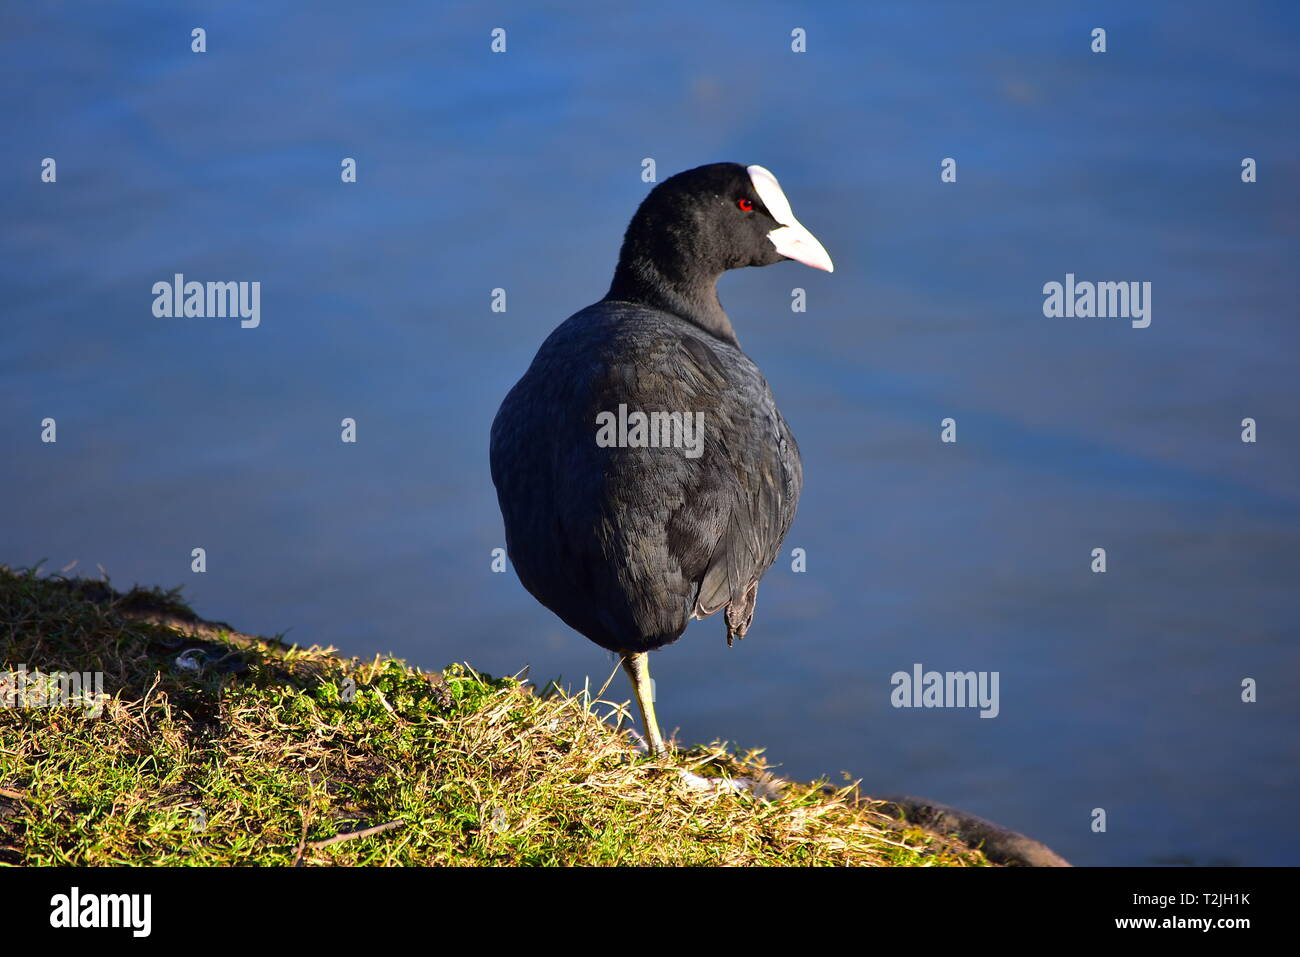 Adult Coot Resting on one leg. Enjoying the sun on the bank of a lake - Stock Image